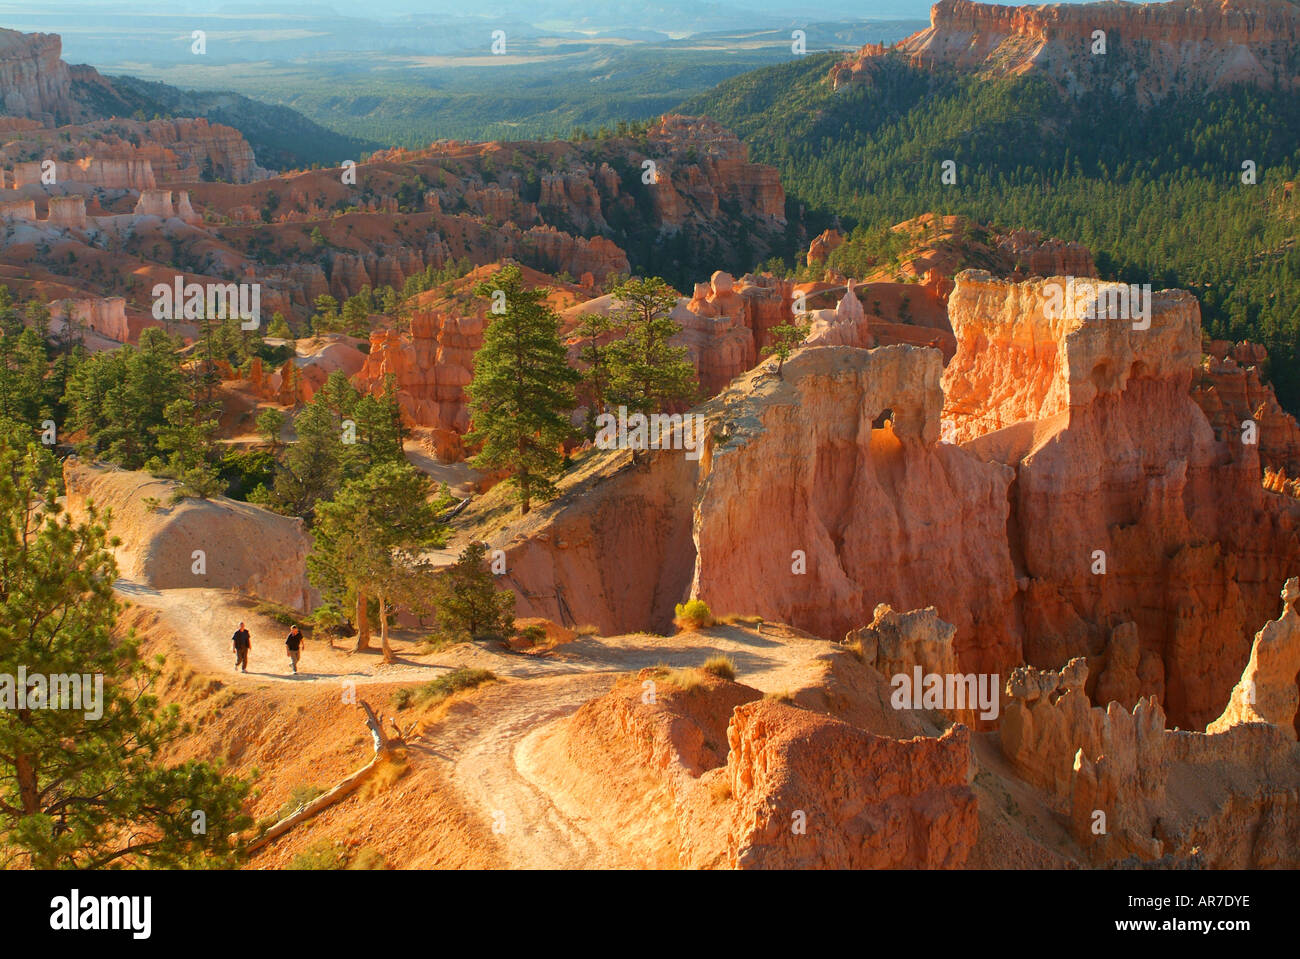 the-queens-garden-trail-takes-hikers-down-to-the-bryce-amphitheater-AR7DYE.jpg